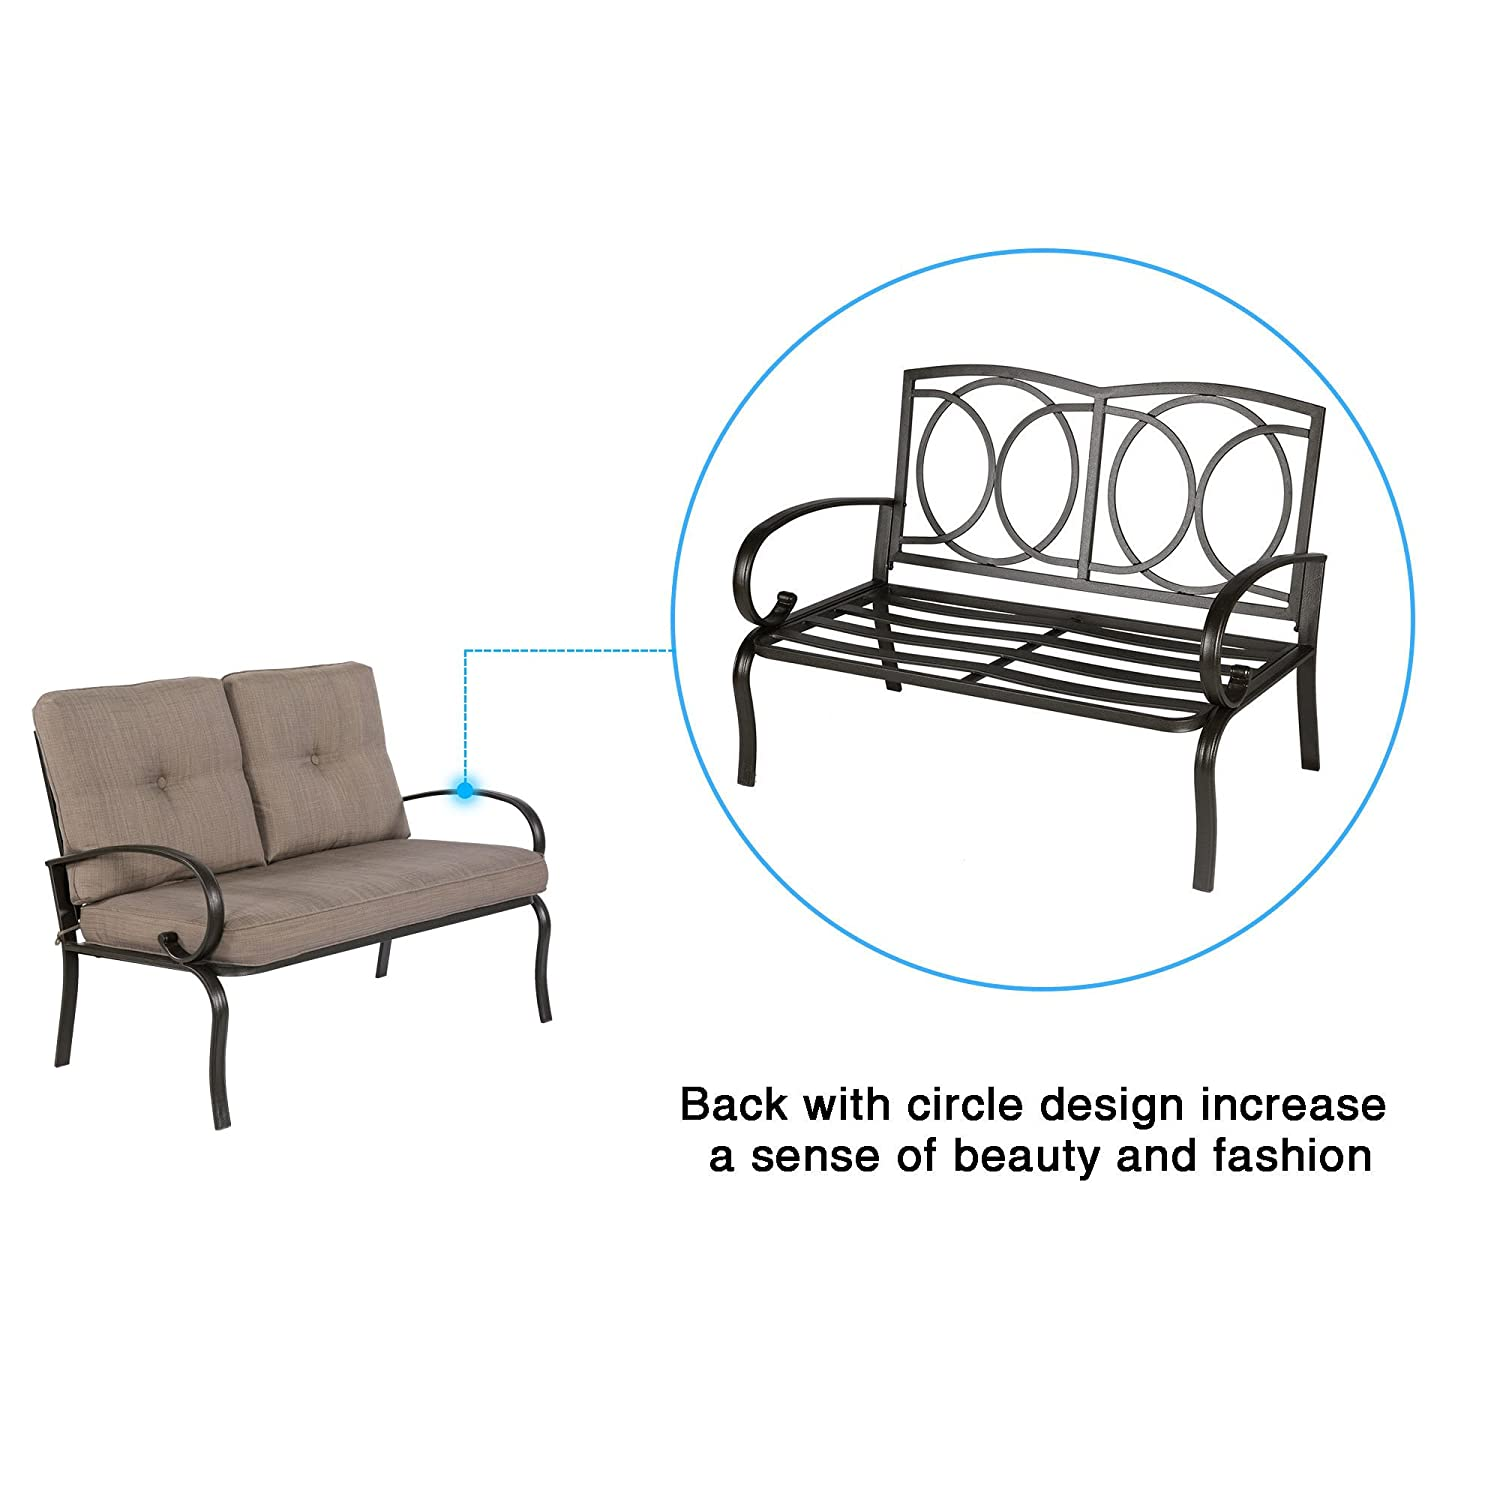 Cloud Mountain Patio Loveseat Outdoor 2 PCs Loveseat Furniture Set Garden Patio Love Seat Bench Sofa with Cushions Brick Red